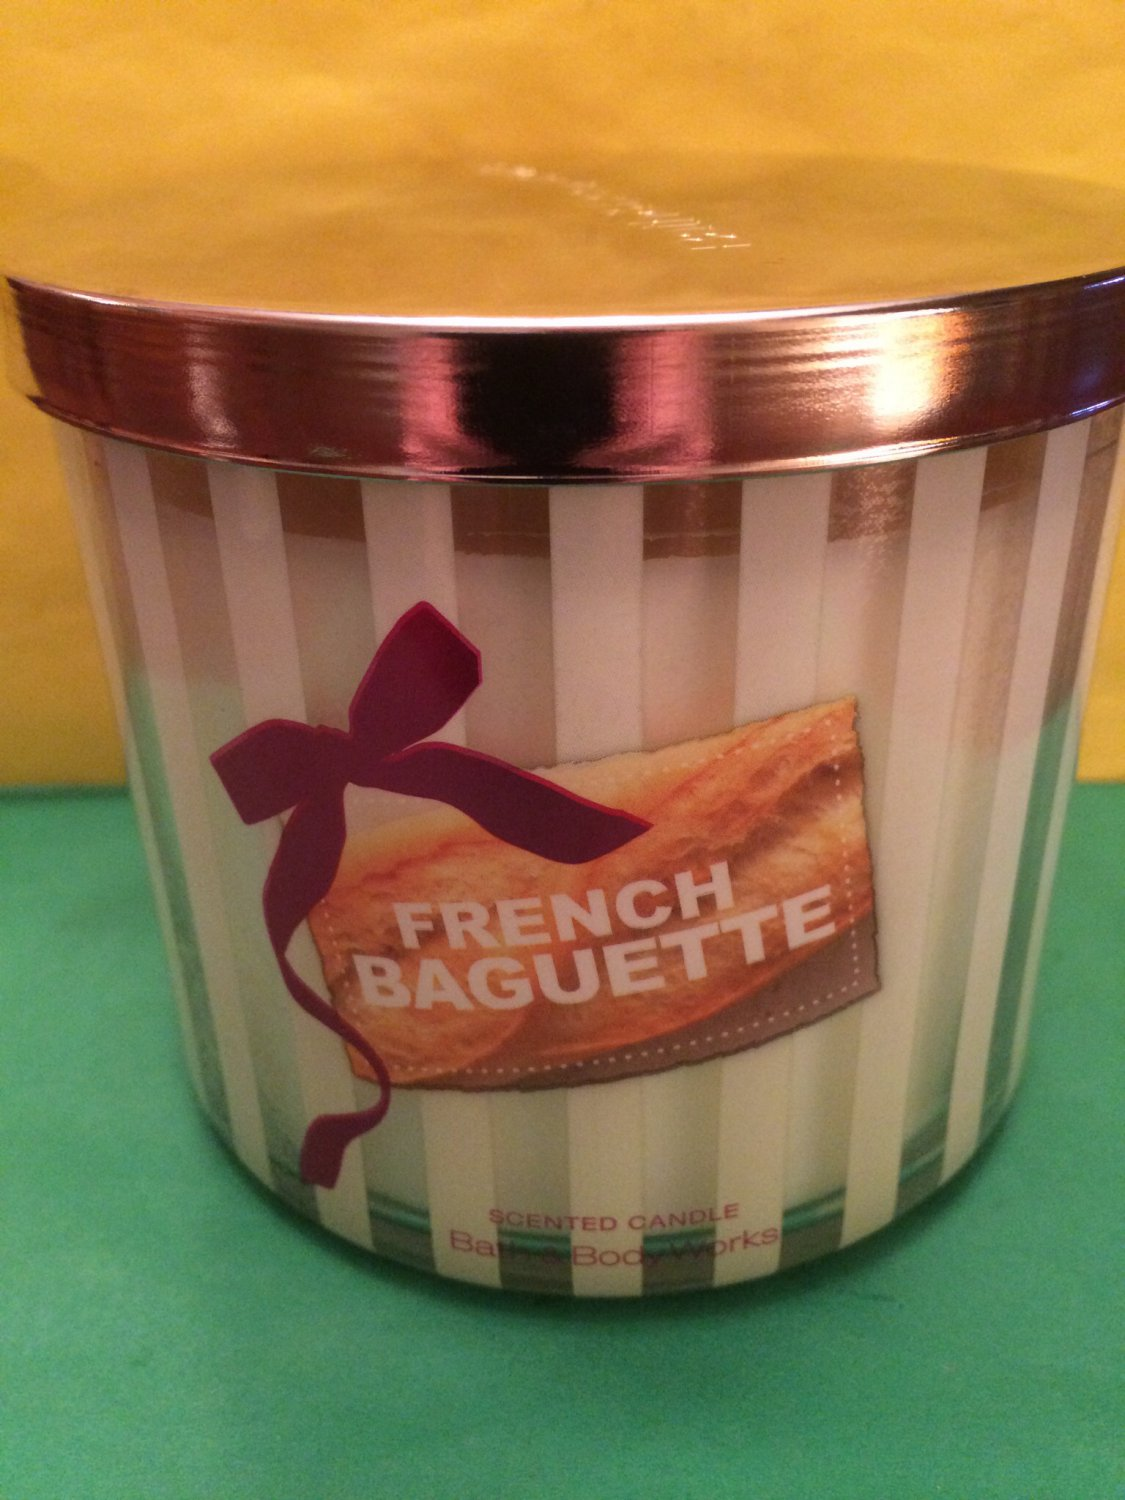 Bath Amp Body Works French Baguette Candle 3 Wick Large